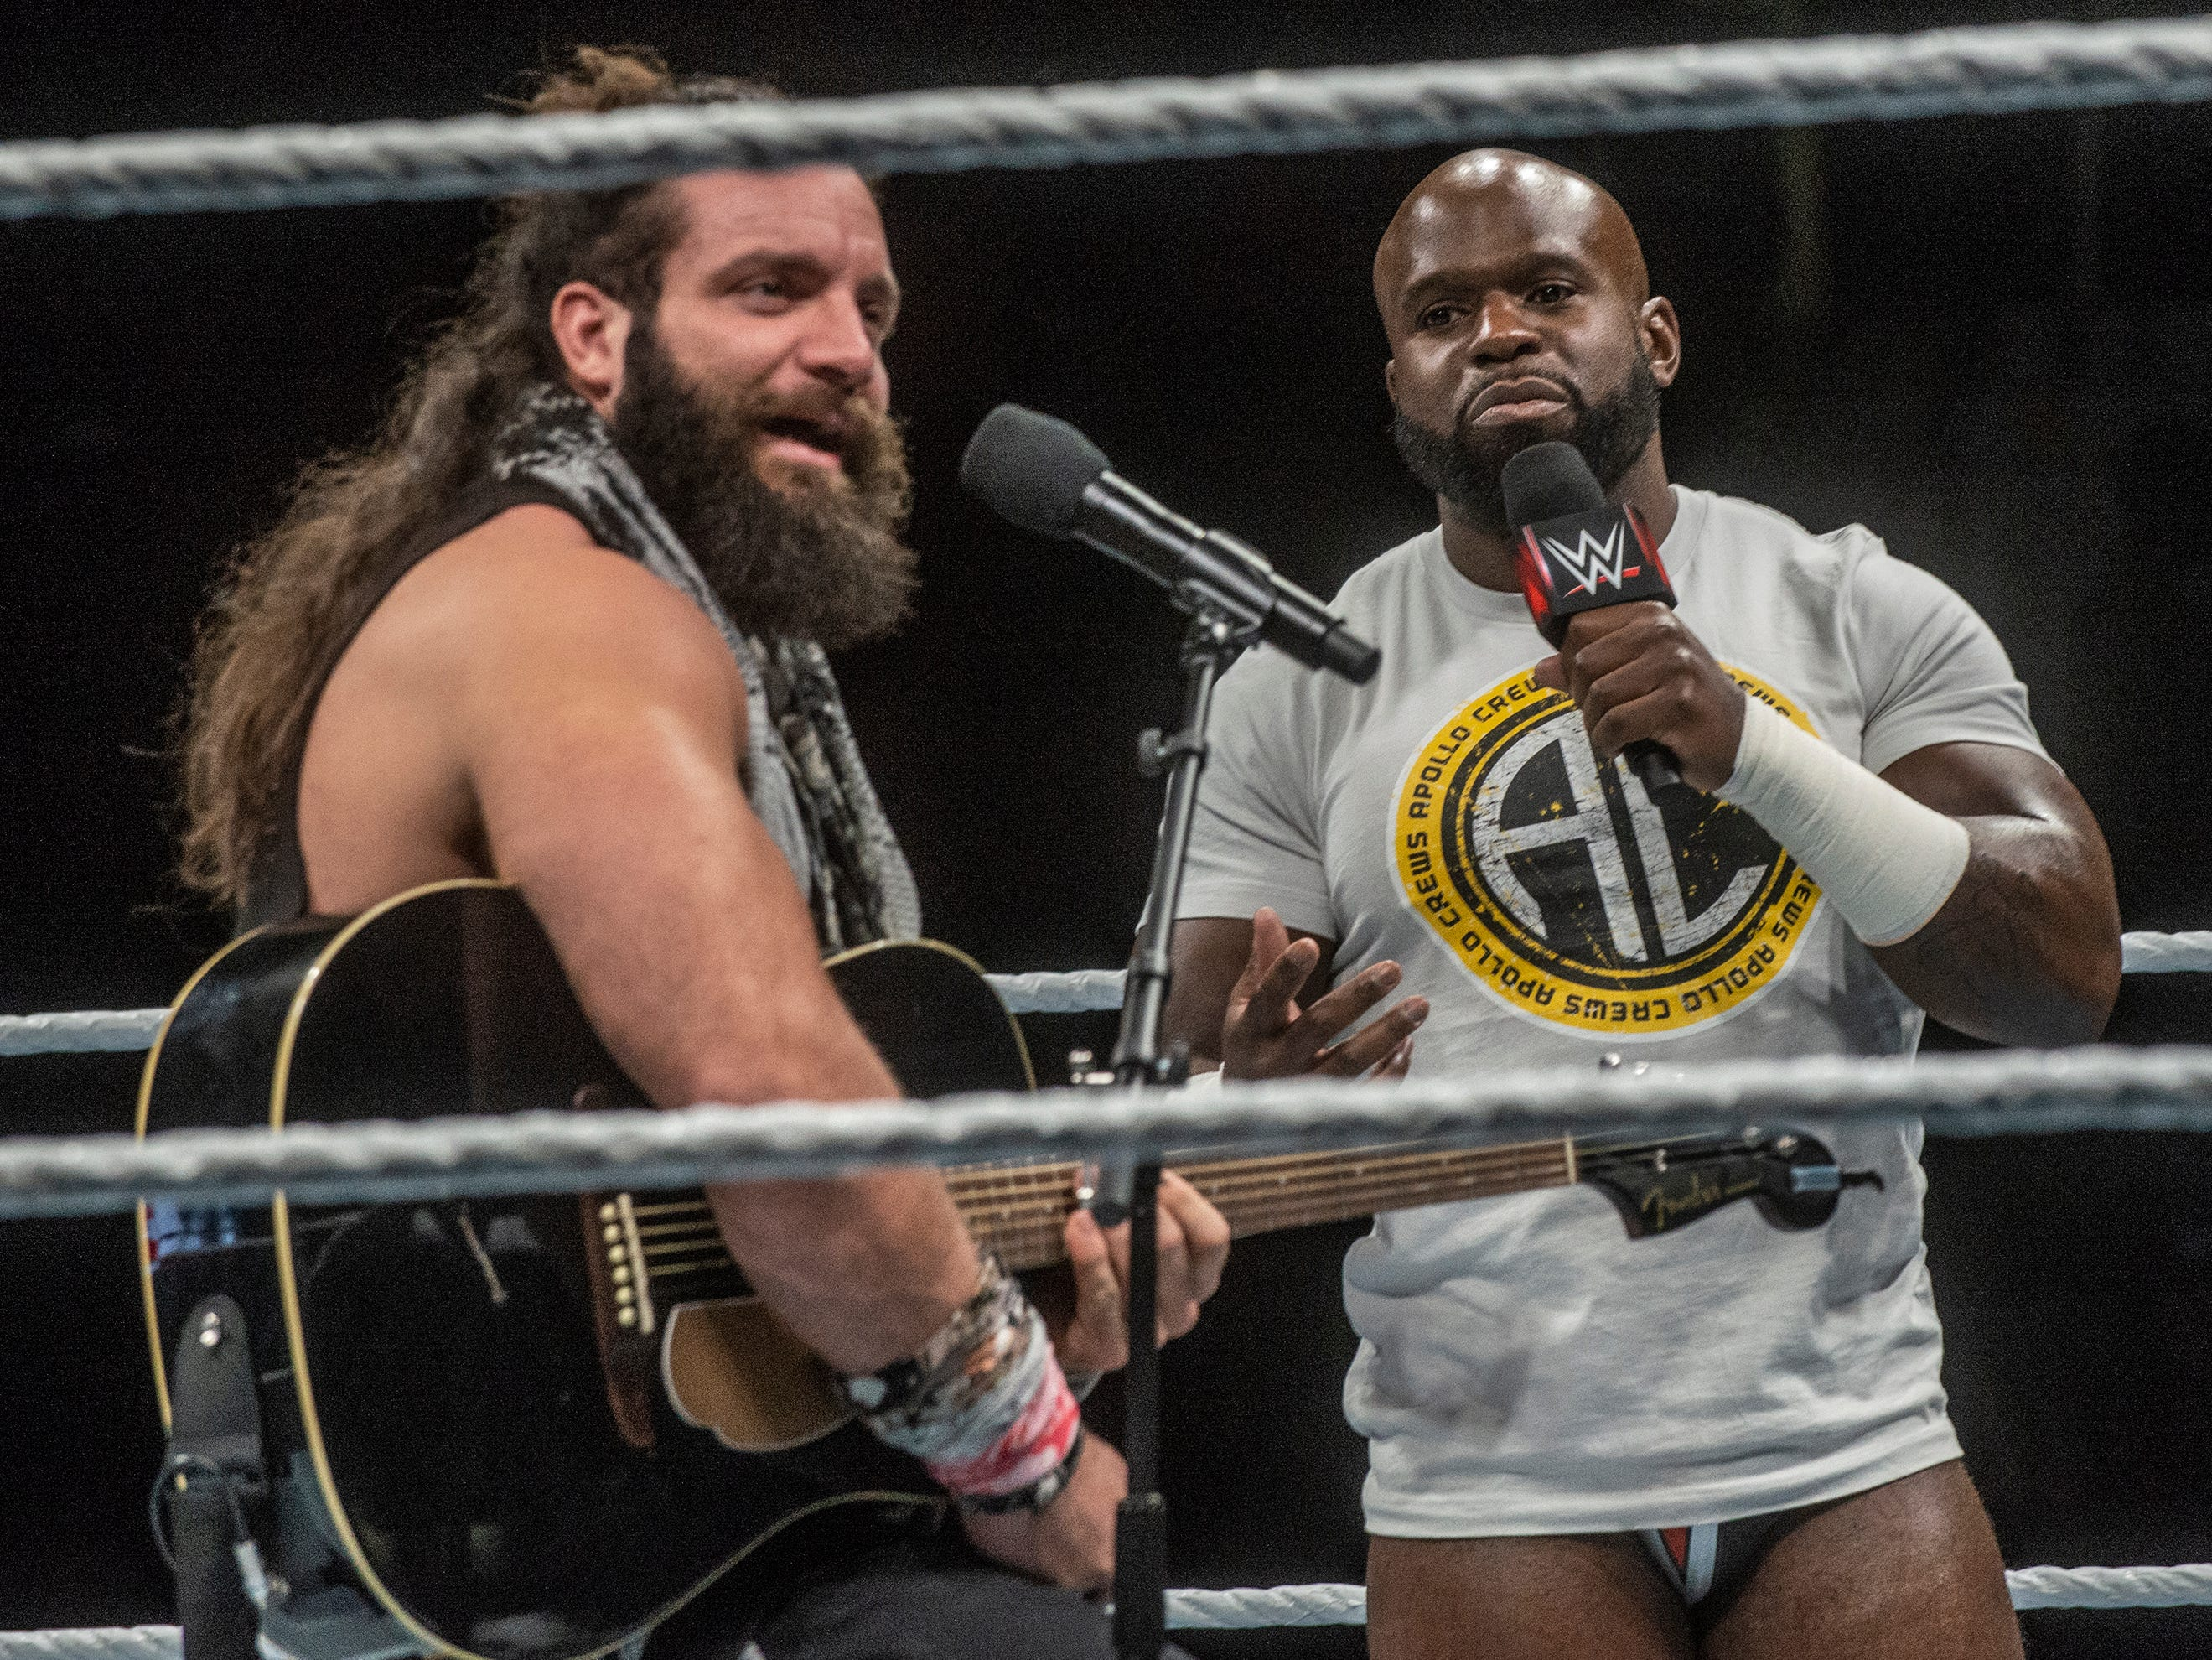 """Elias, left, and Apollo Crews sing """"Sweet Home Alabama"""" to the crowd. WWE Live Road to Wrestlemania came to Garrett Coliseum in Montgomery on Sunday, Feb. 24, 2019."""